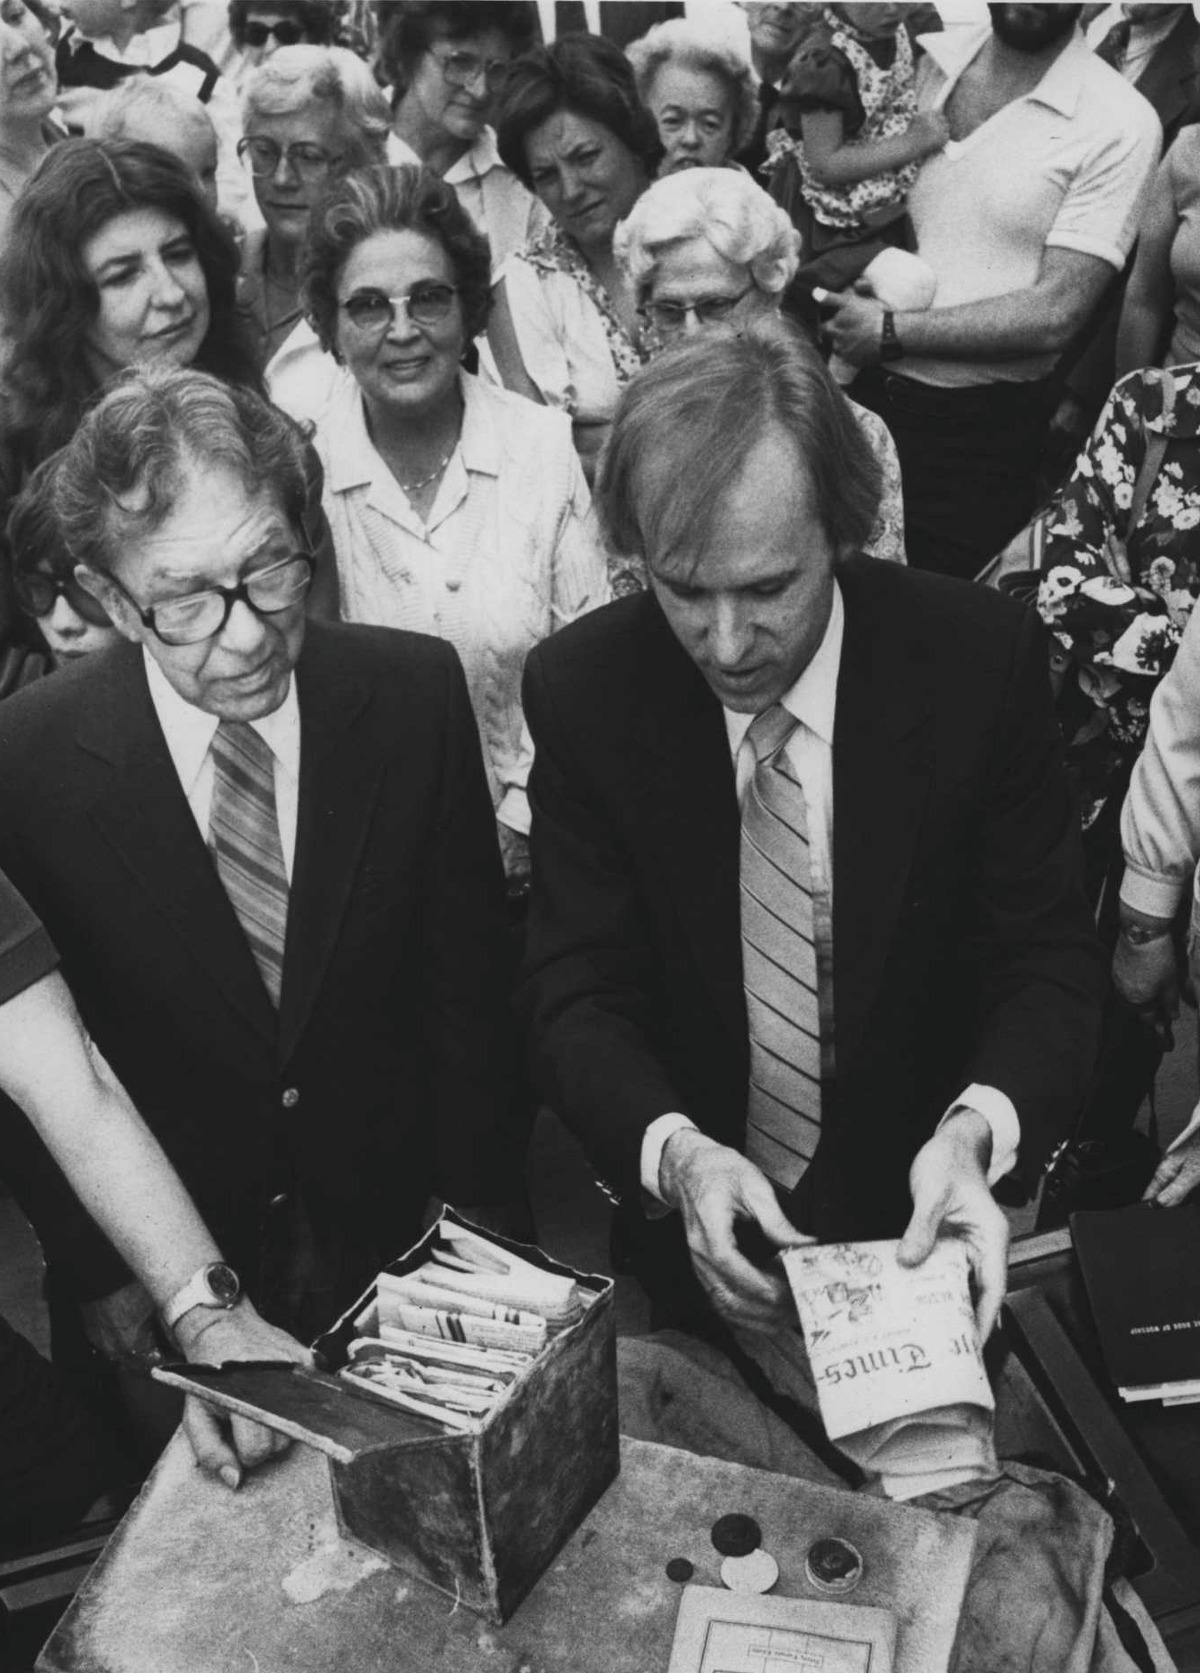 St. Paul's United Methodist Church, Castleton, May 26, 1981:Rev. Ashley Calhoun removes Times Union newspaper from time capsule. May 26, 1981 (Times Union Archive)